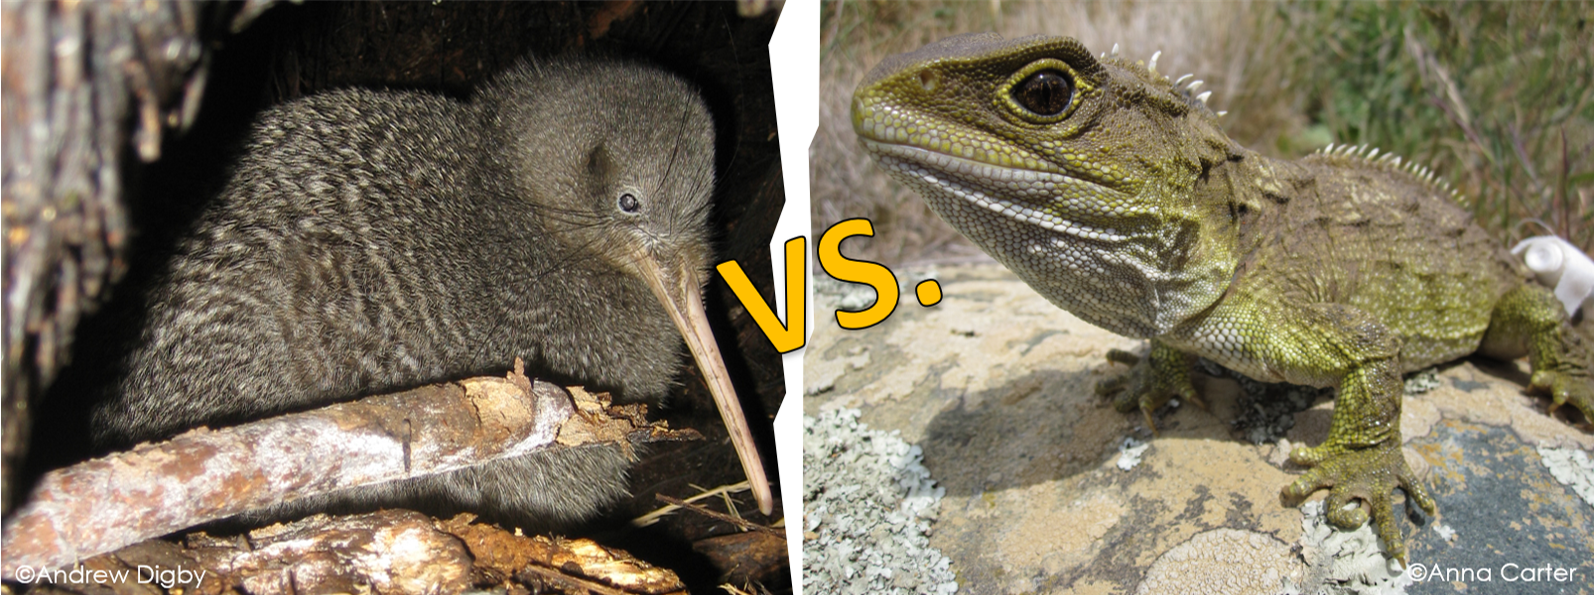 Featured image: Kiwi and tuatara could be ancient foes